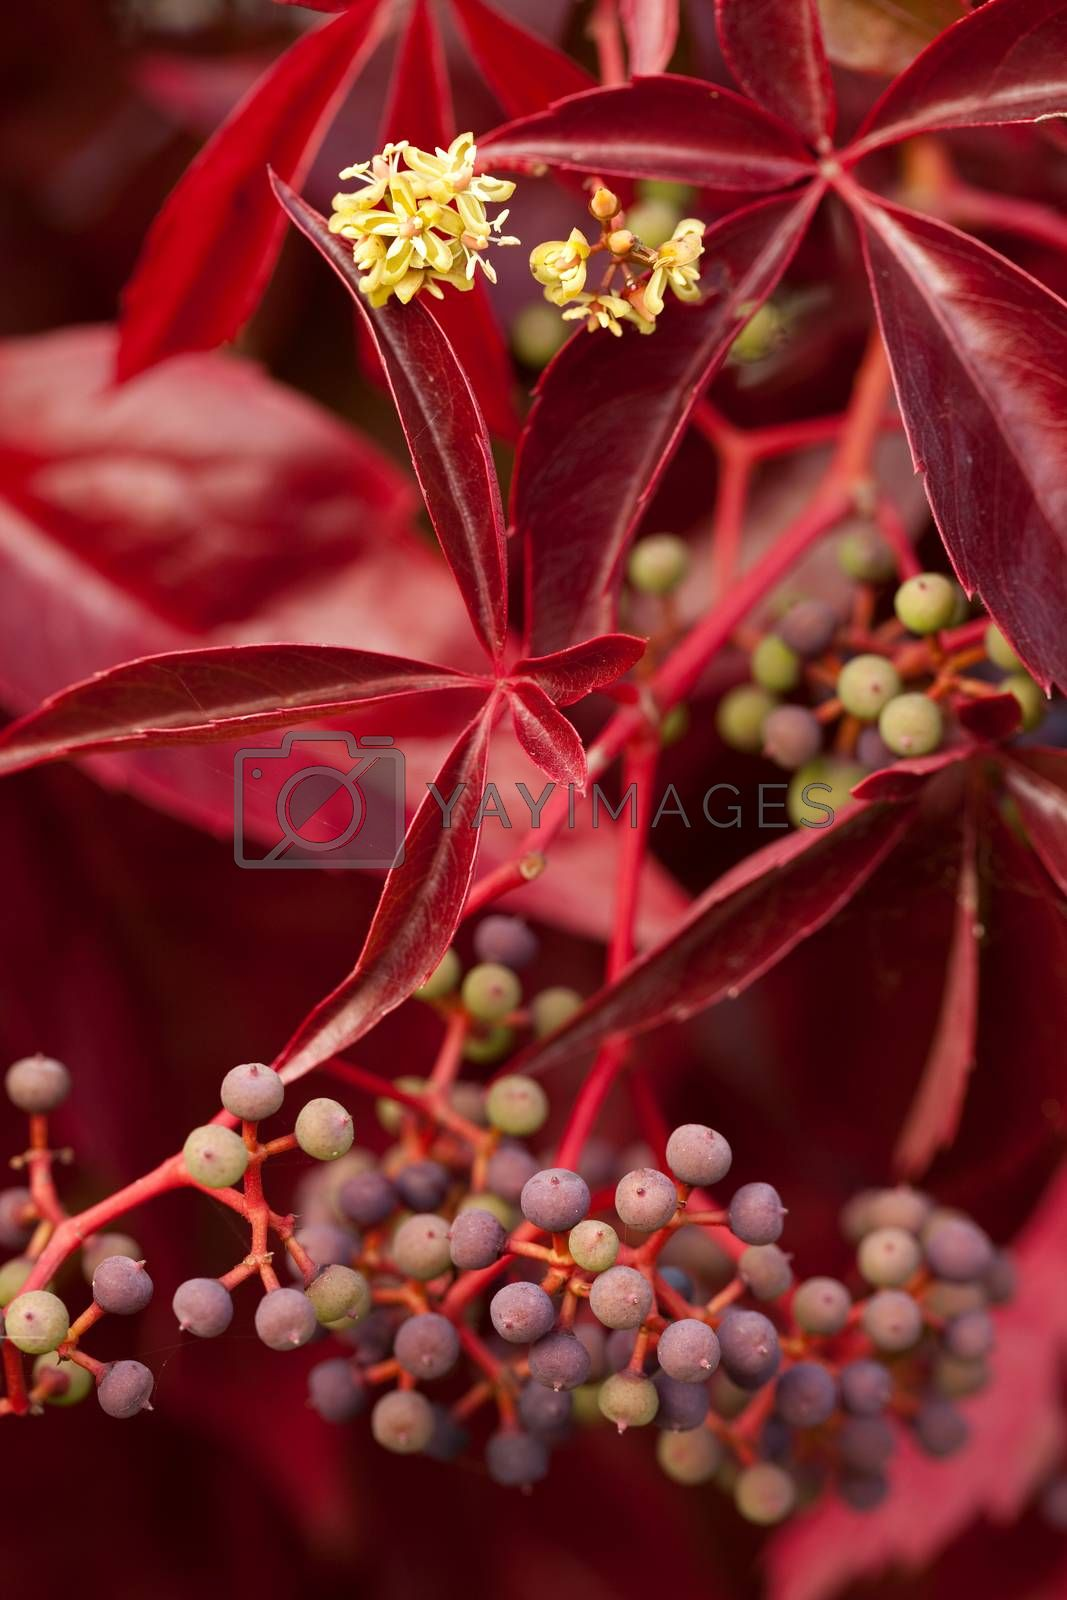 Boston ivy  (Parthenocissus tricuspidata) with flower and fruits